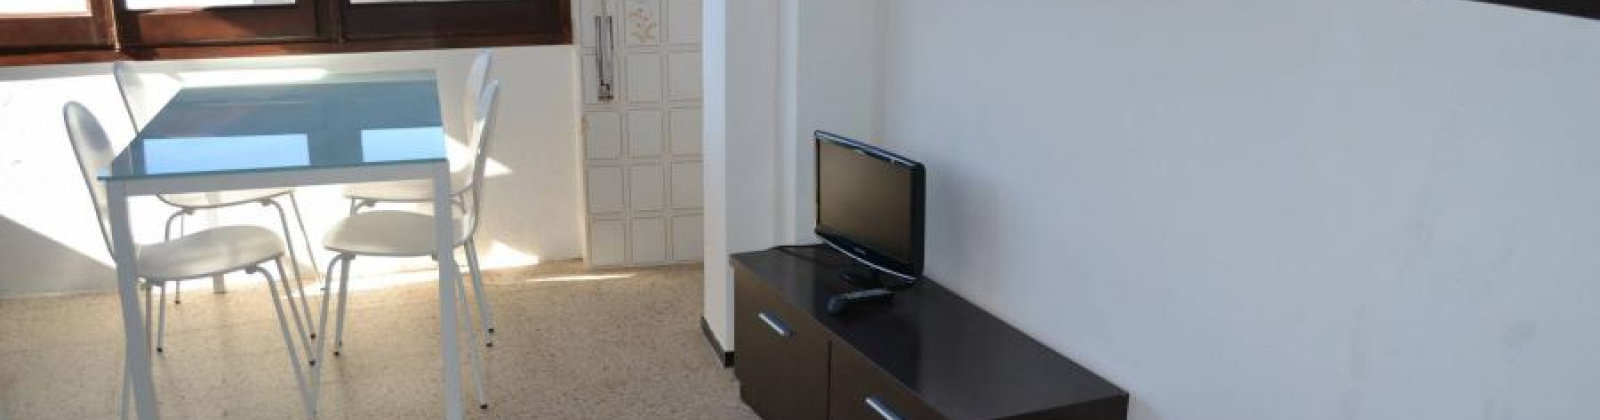 16 Roger de flor,Llançà,Catalonia 17490,2 Bedrooms Bedrooms,1 BathroomBathrooms,Apartment,Roger de flor,1005